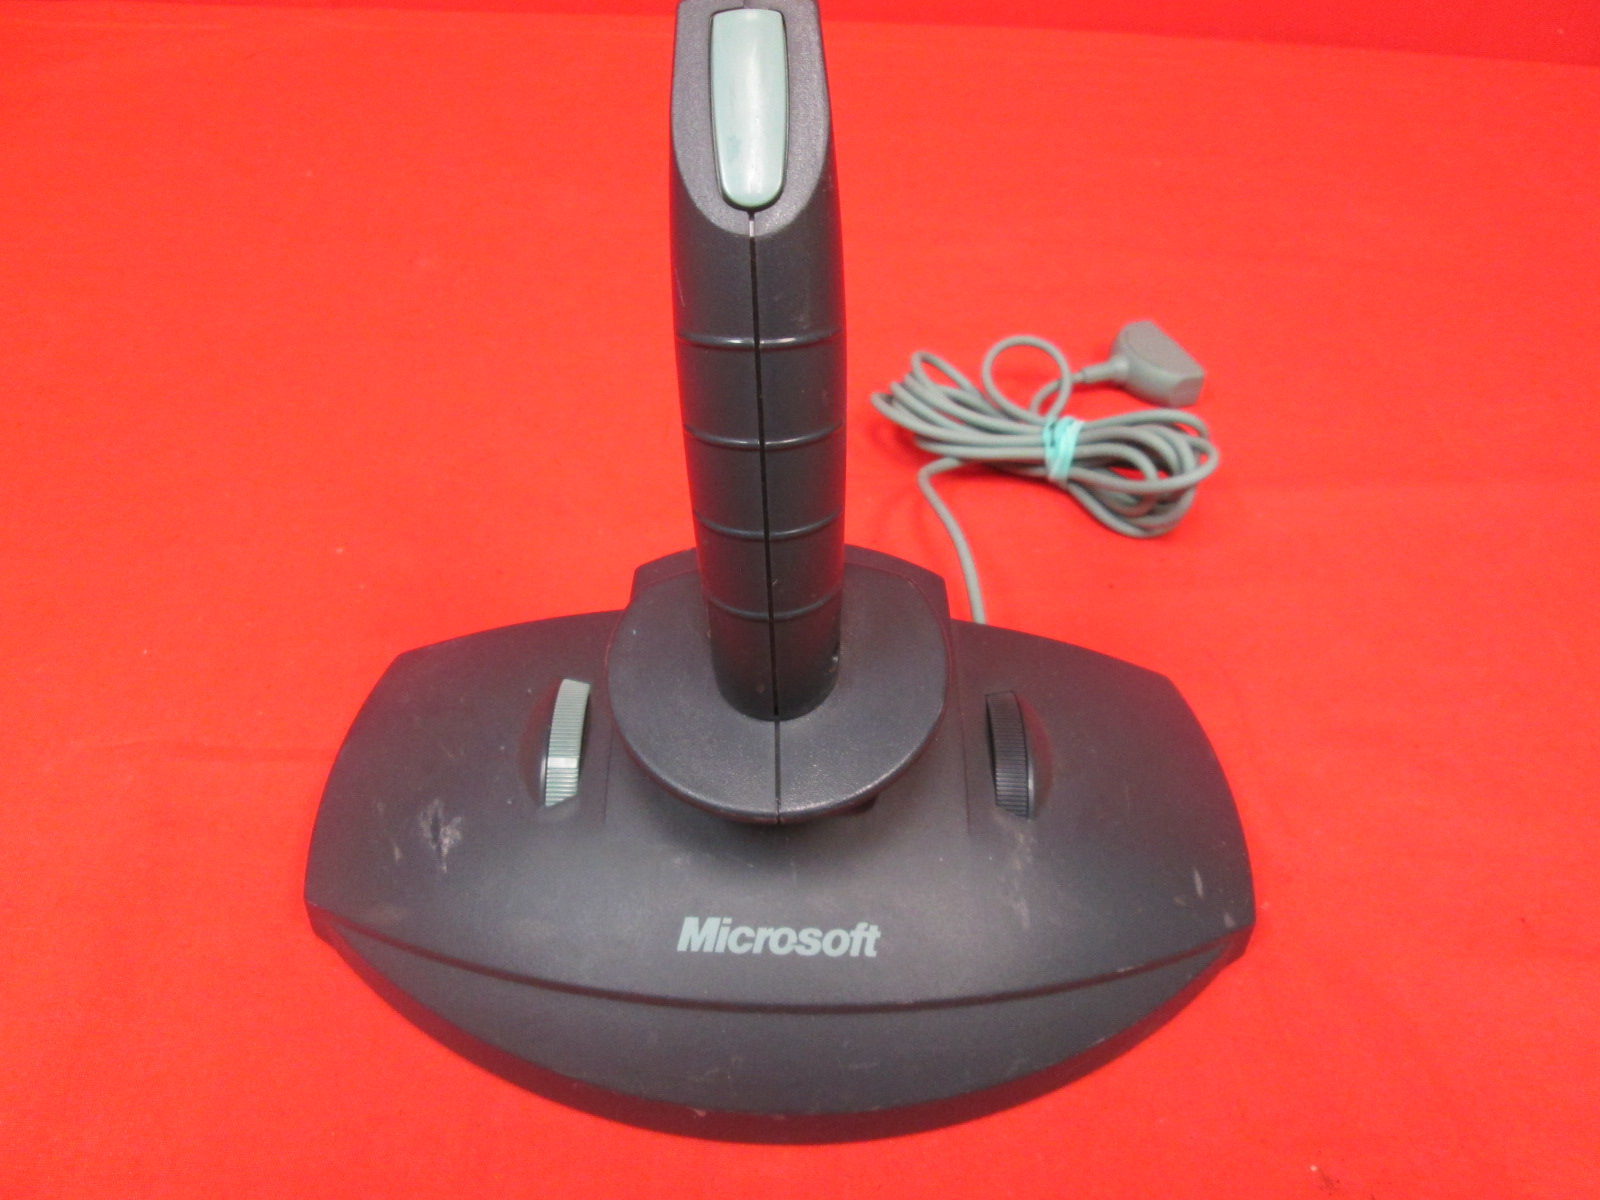 Broken Microsoft Sidewinder Joystick For PC 91853